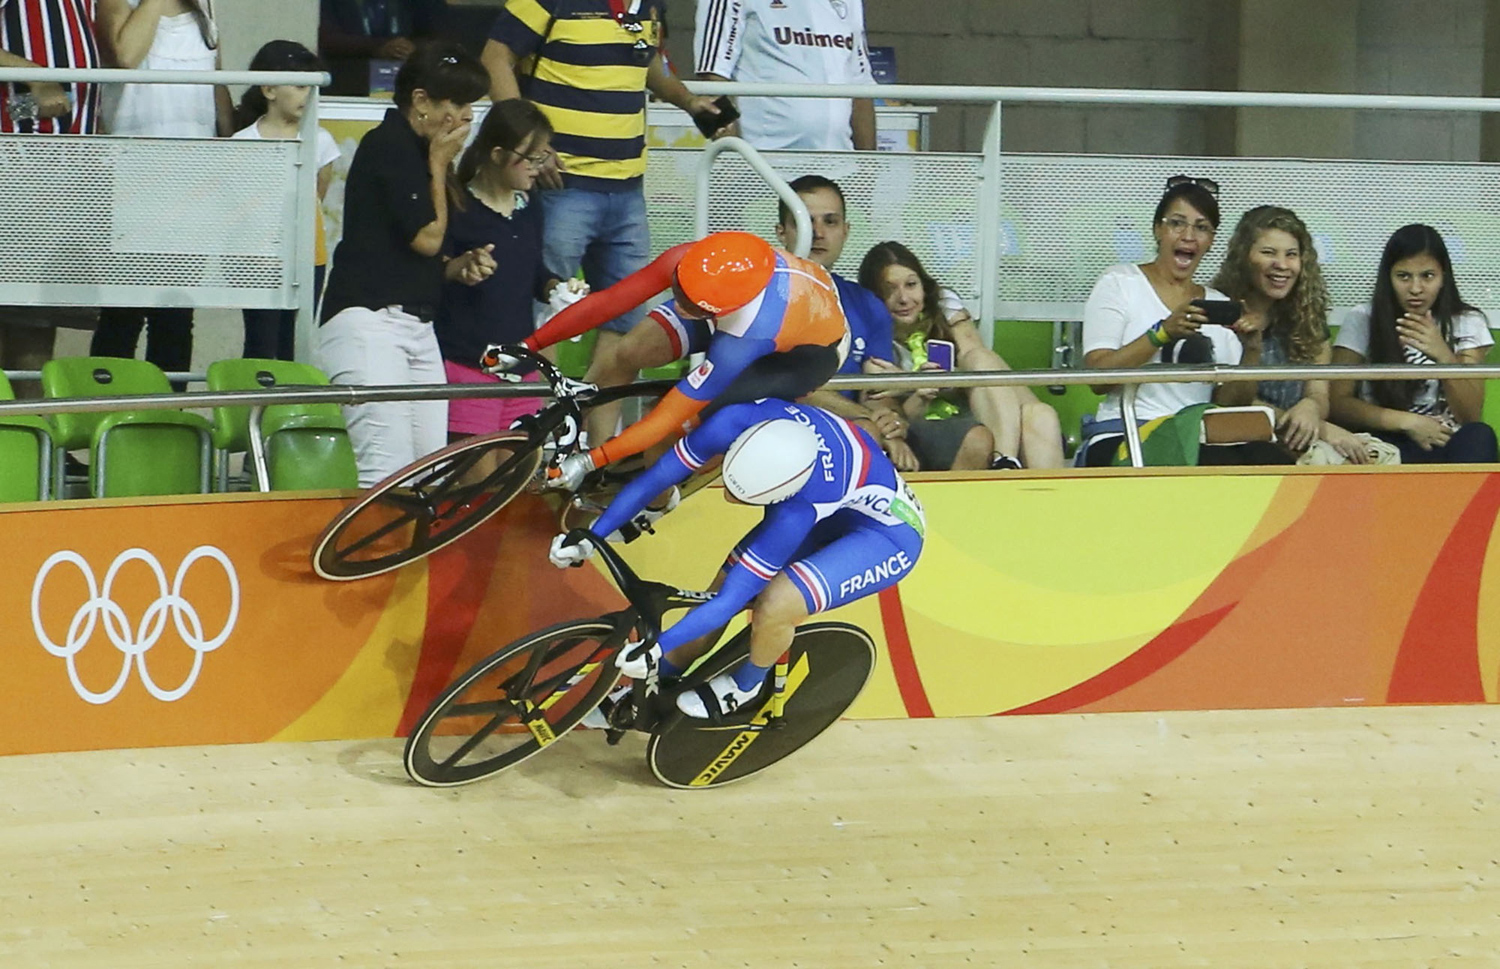 2016 Rio Olympics - Cycling Track - Preliminary - Women's Keirin First Round - Rio Olympic Velodrome - Rio de Janeiro, Brazil - 13/08/2016. Laurine van Riessen (NED) of Netherlands and Virginie Cueff (FRA) of France compete.  REUTERS/Paul Hanna TPX IMAGES OF THE DAY. FOR EDITORIAL USE ONLY. NOT FOR SALE FOR MARKETING OR ADVERTISING CAMPAIGNS.  - RTX2KKY7